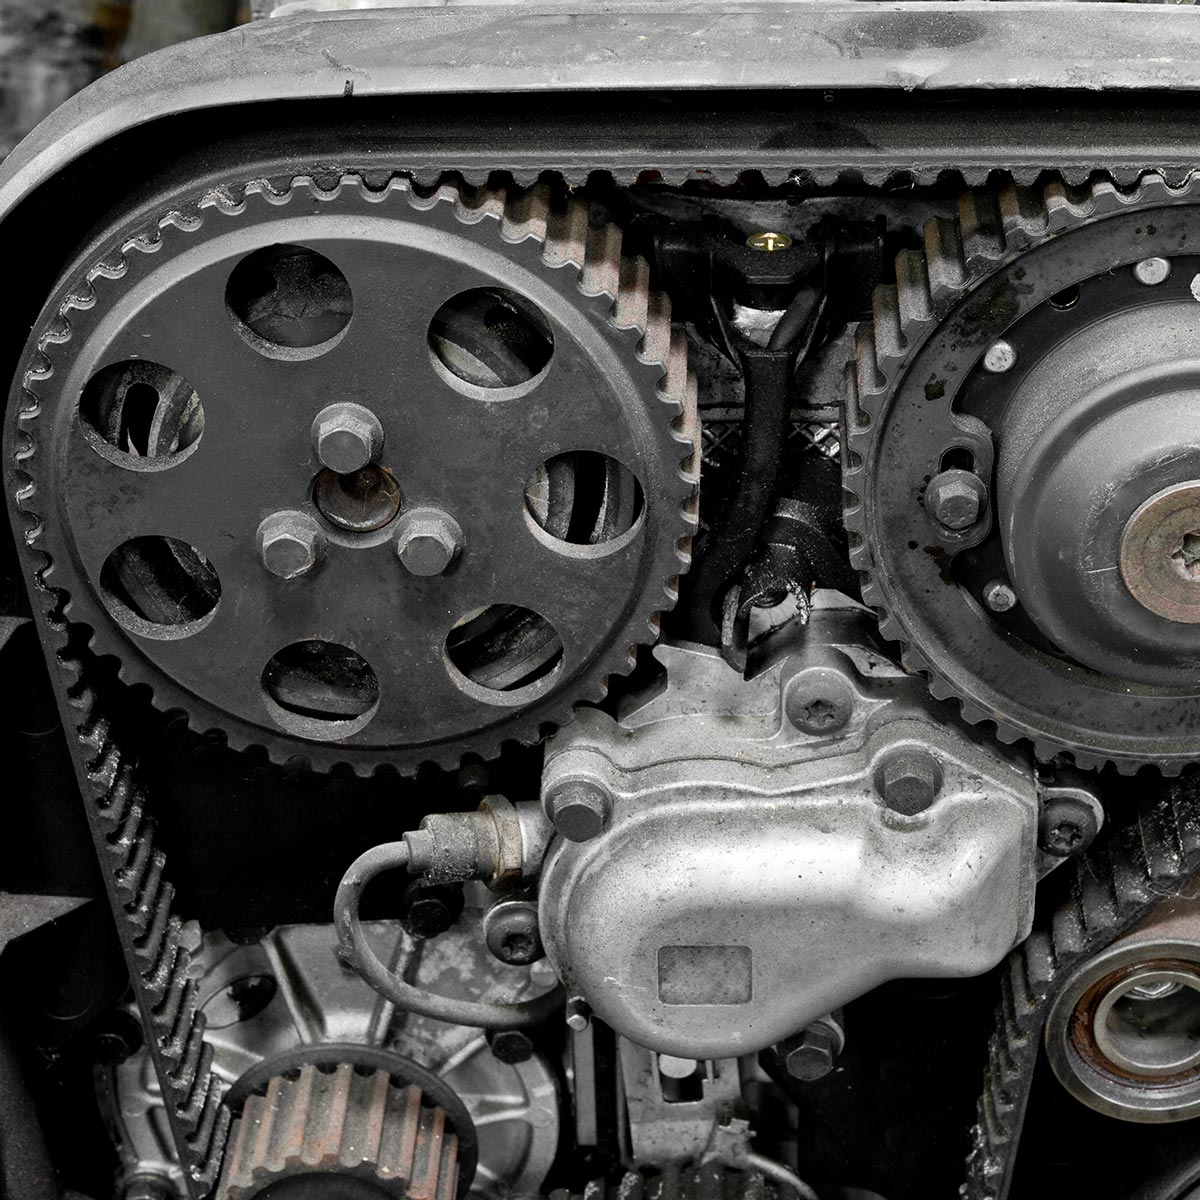 Timing Belt Replacement Costs Amp Repairs Autoguru